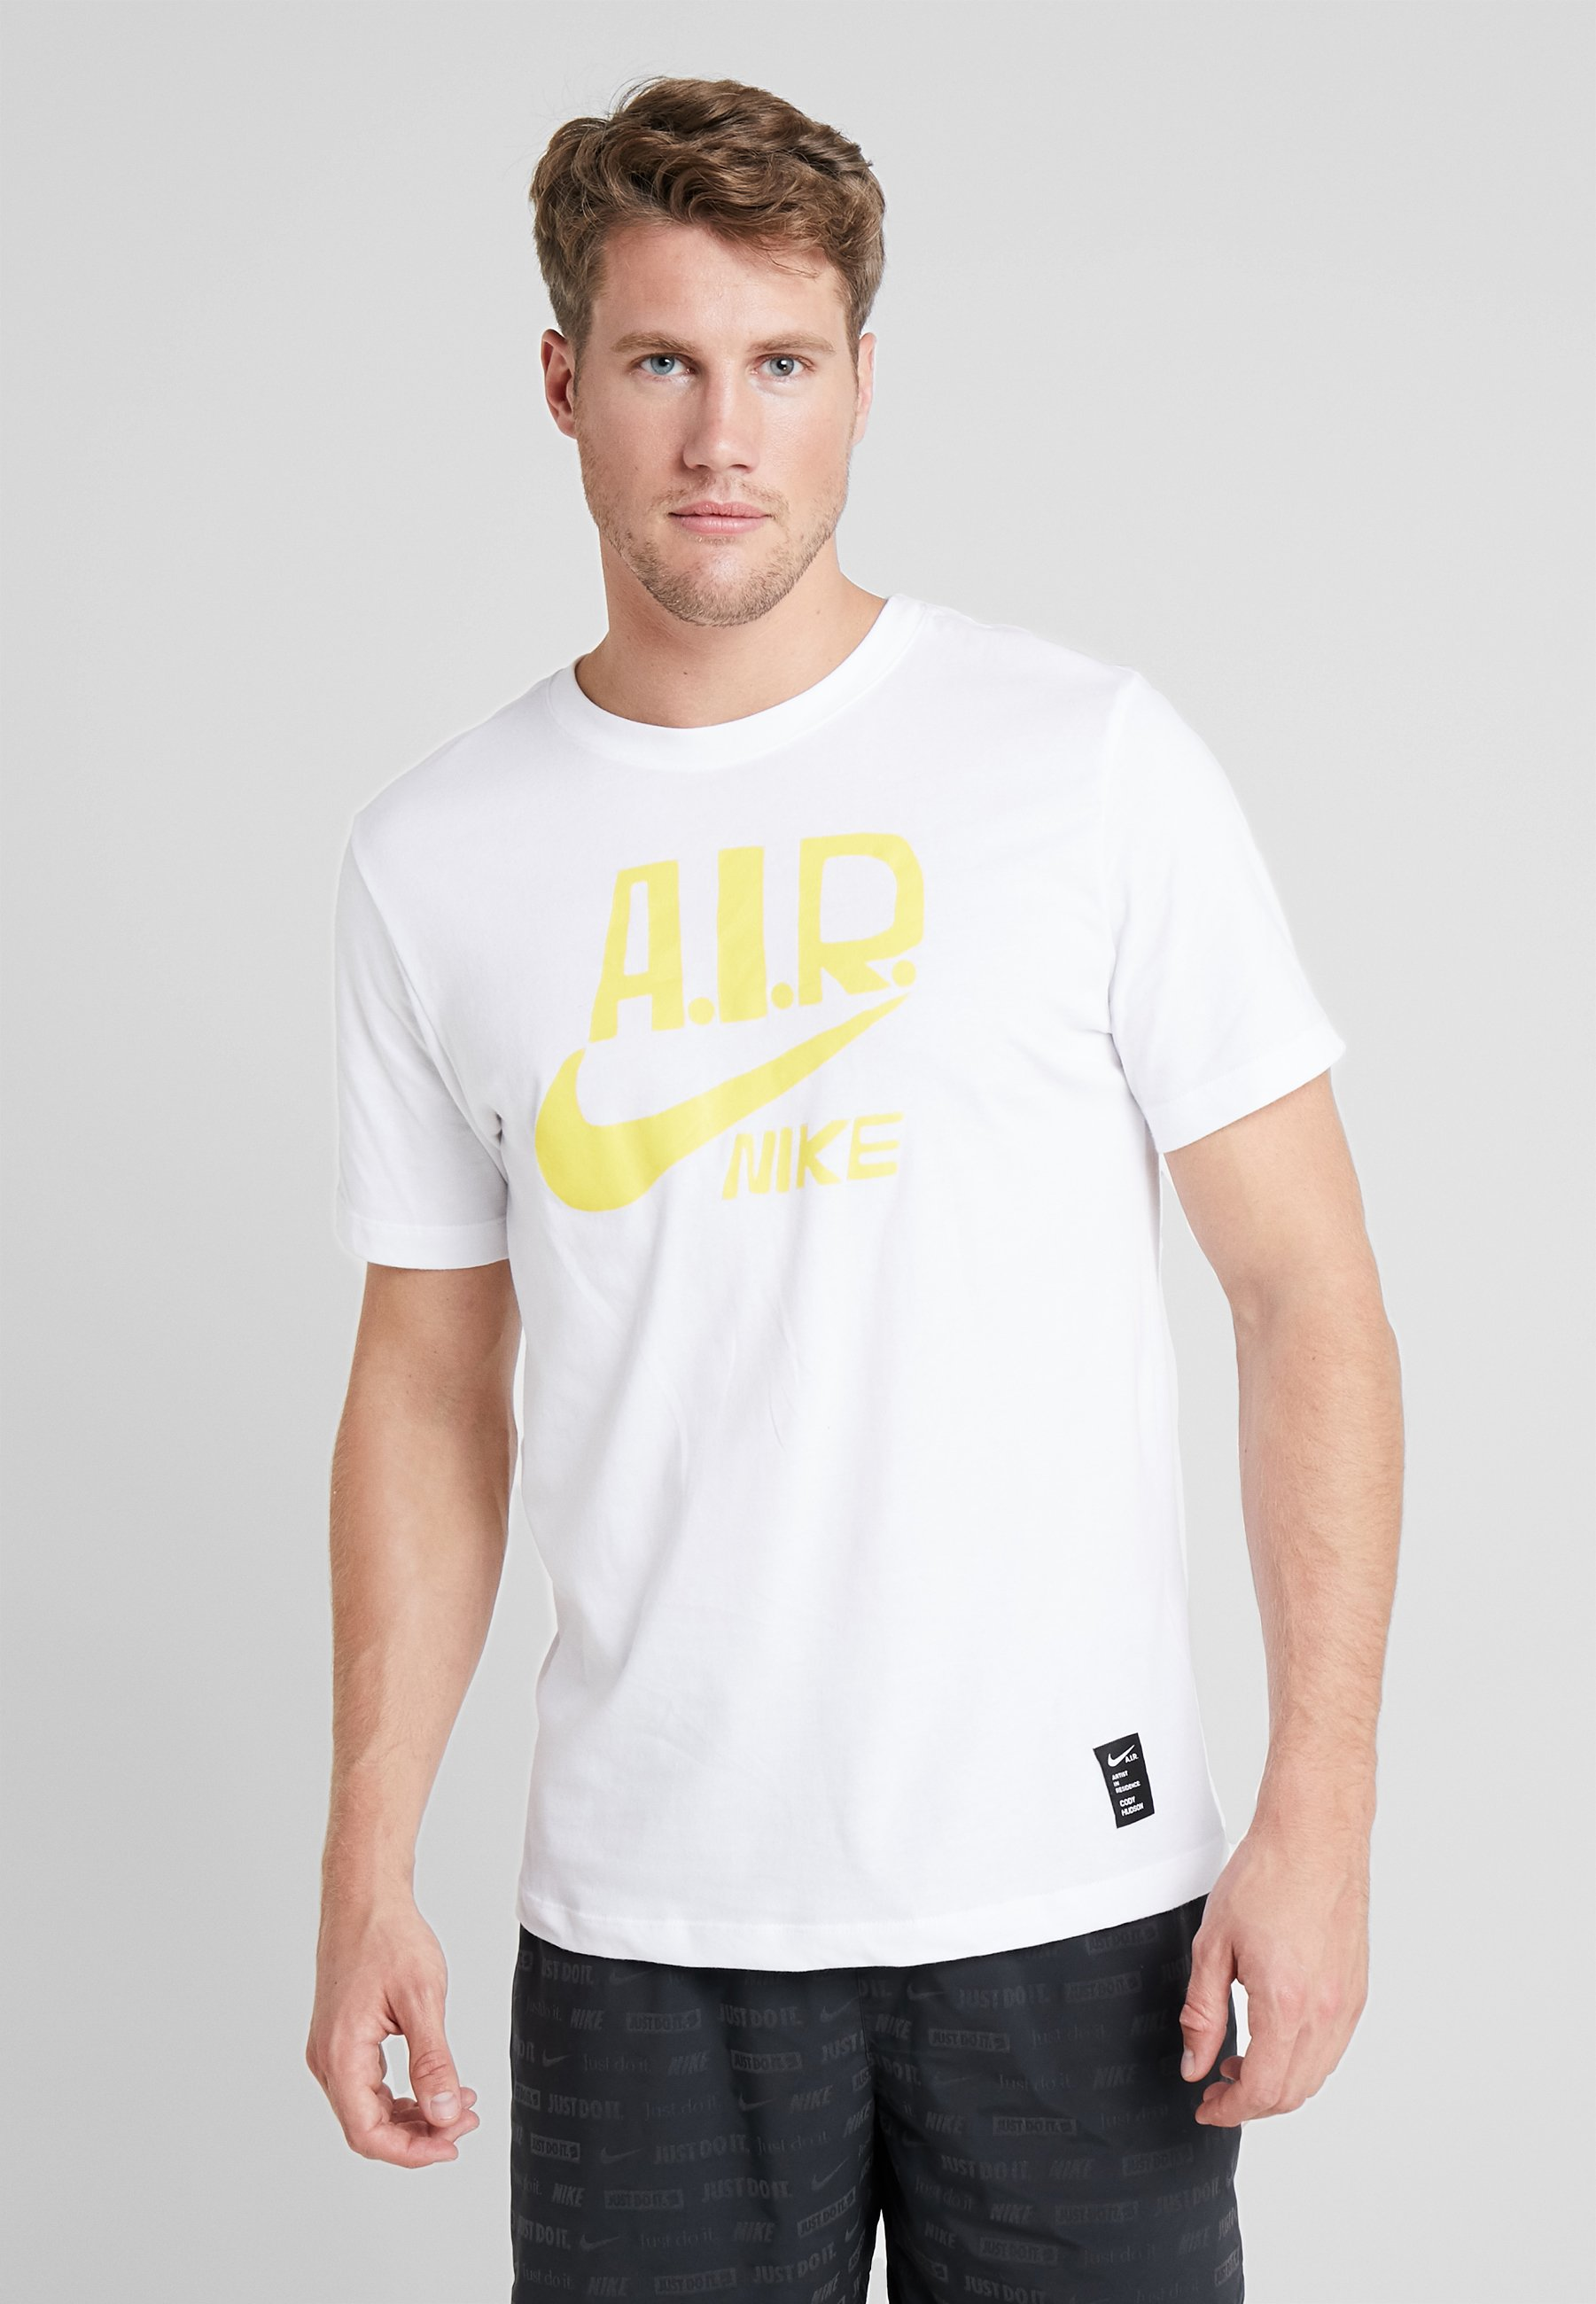 i Yellow shirt Performance Imprimé chrome Tee Nk A Nike White M Dry rCollectionT CedxBo